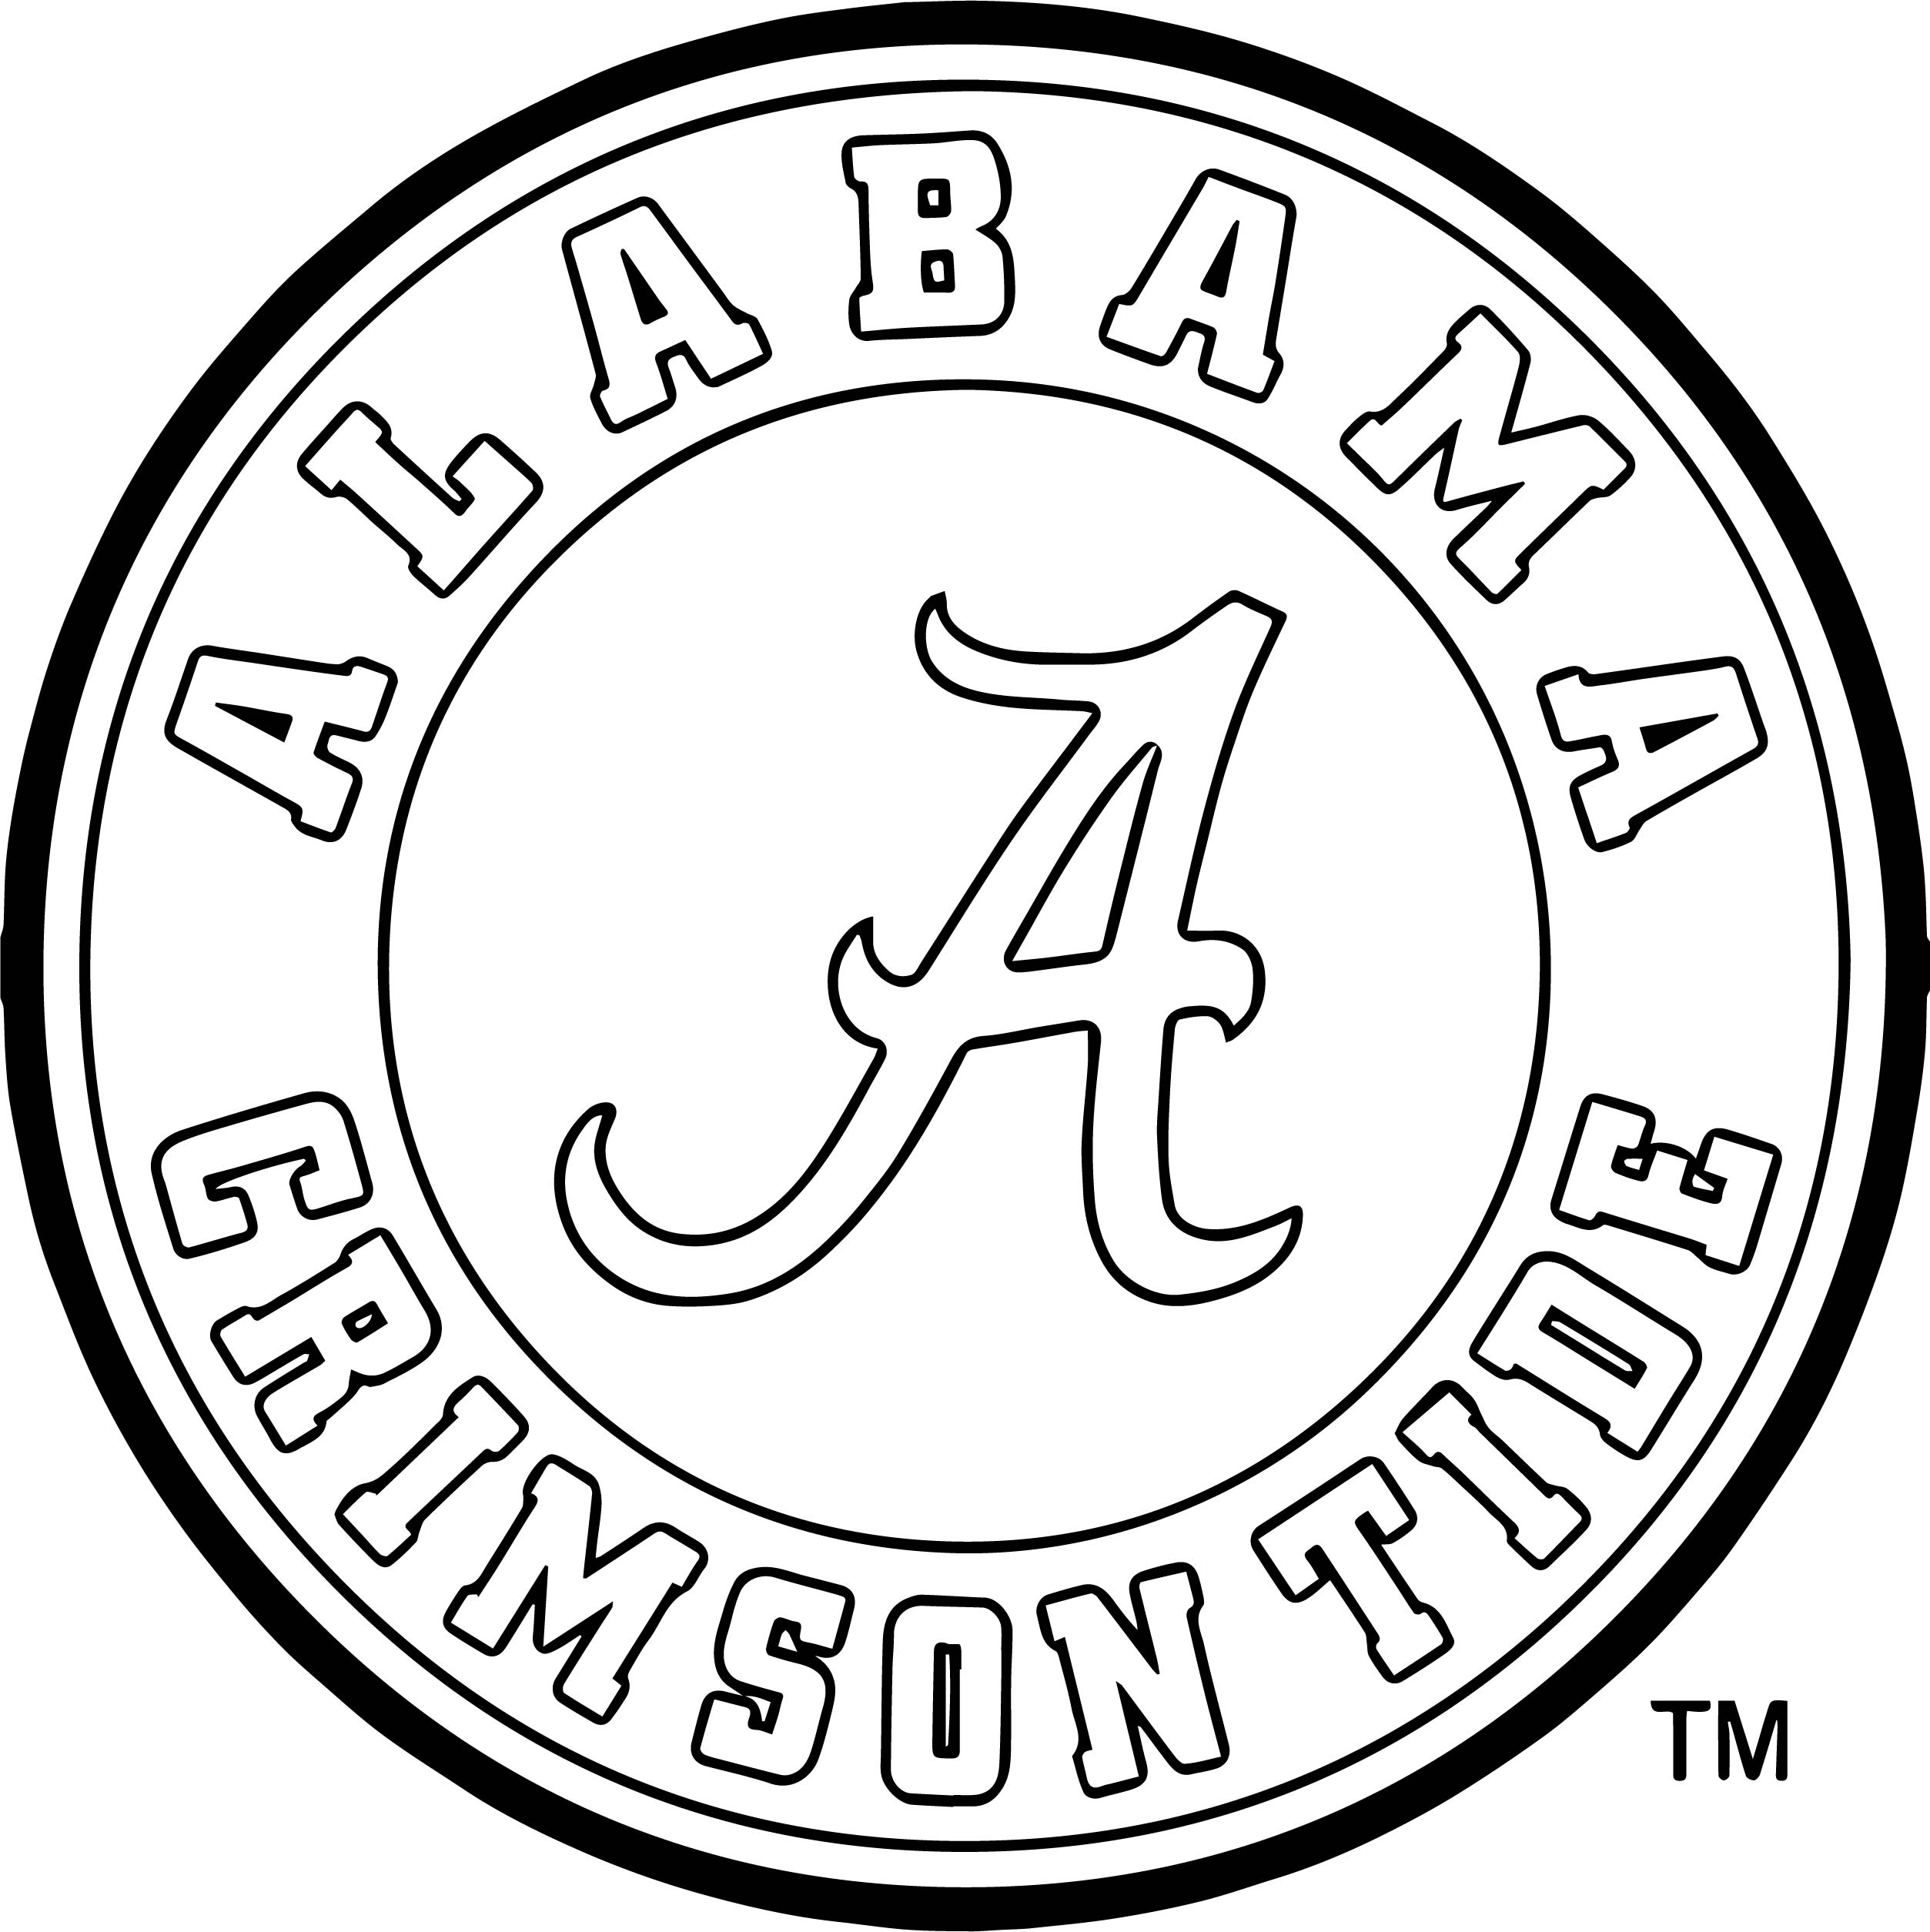 Alabama Football Coloring Pages to Print – Free Coloring Sheets